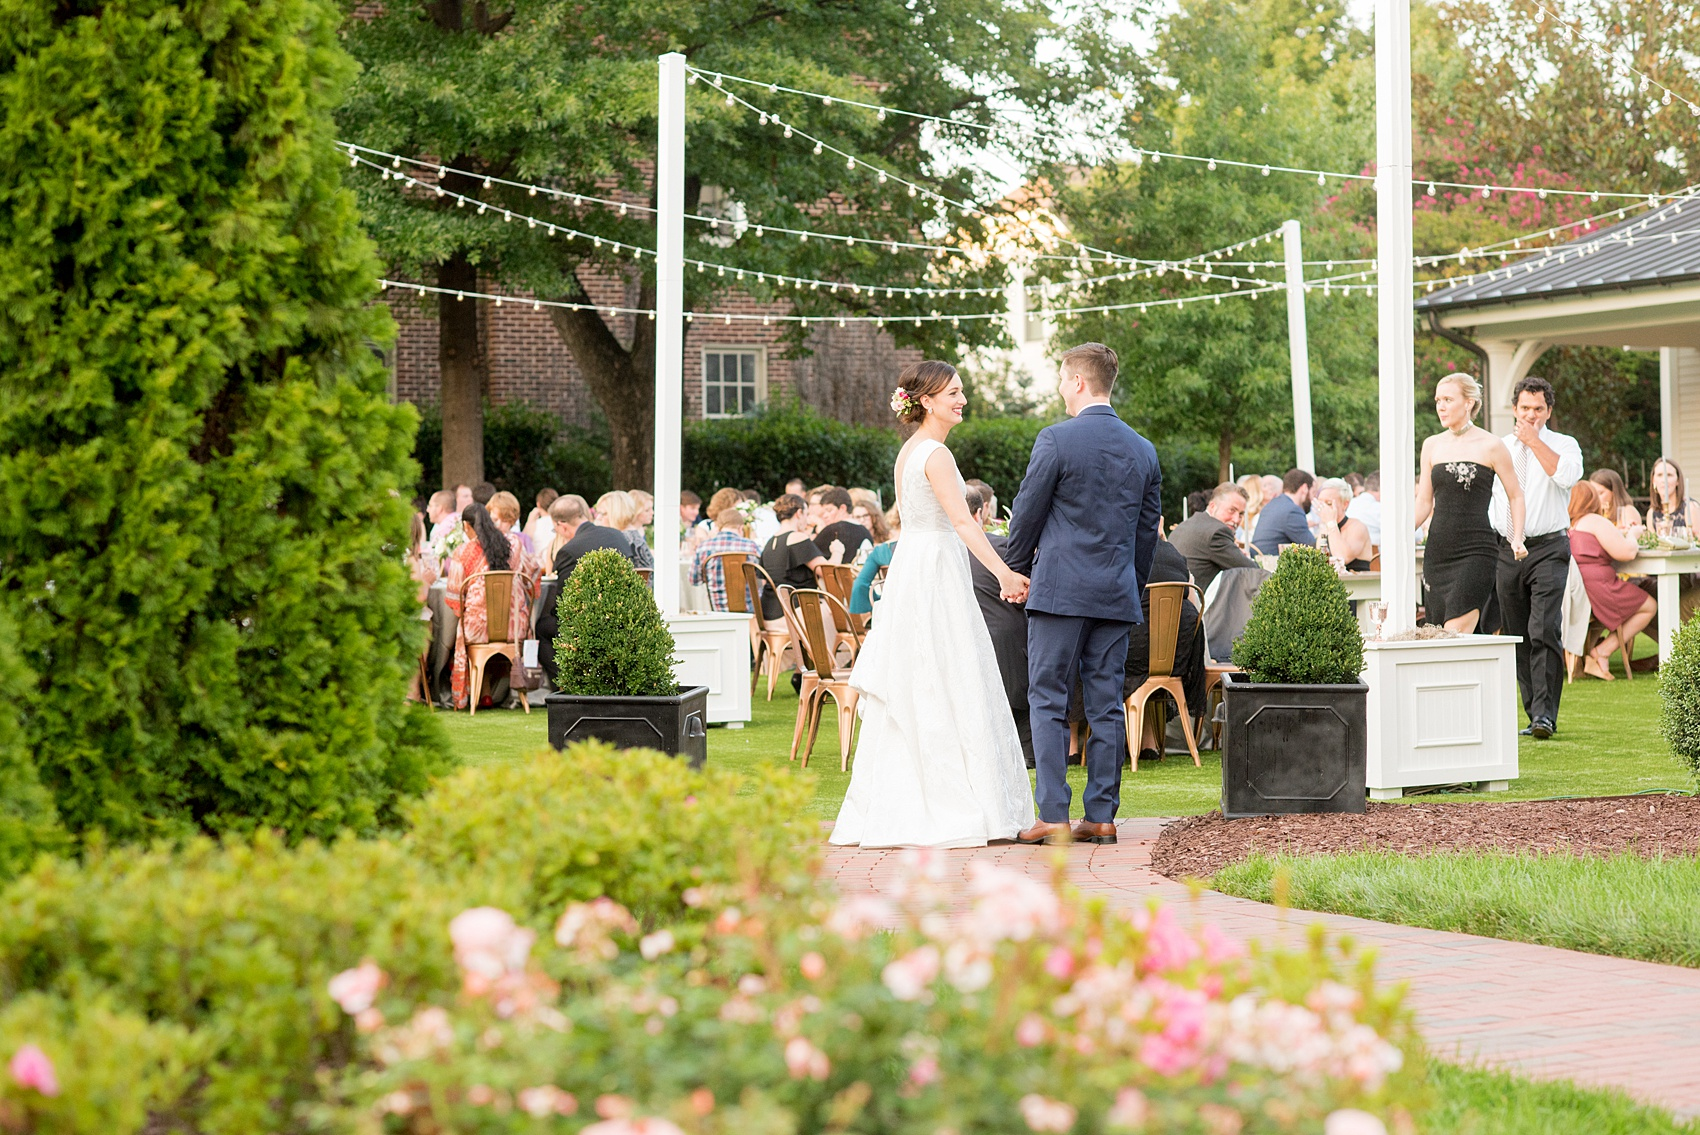 Mikkel Paige Photography pictures from a wedding at Merrimon-Wynne House in Raleigh, NC. Photo of the bride and groom joining their outdoor reception dinner.